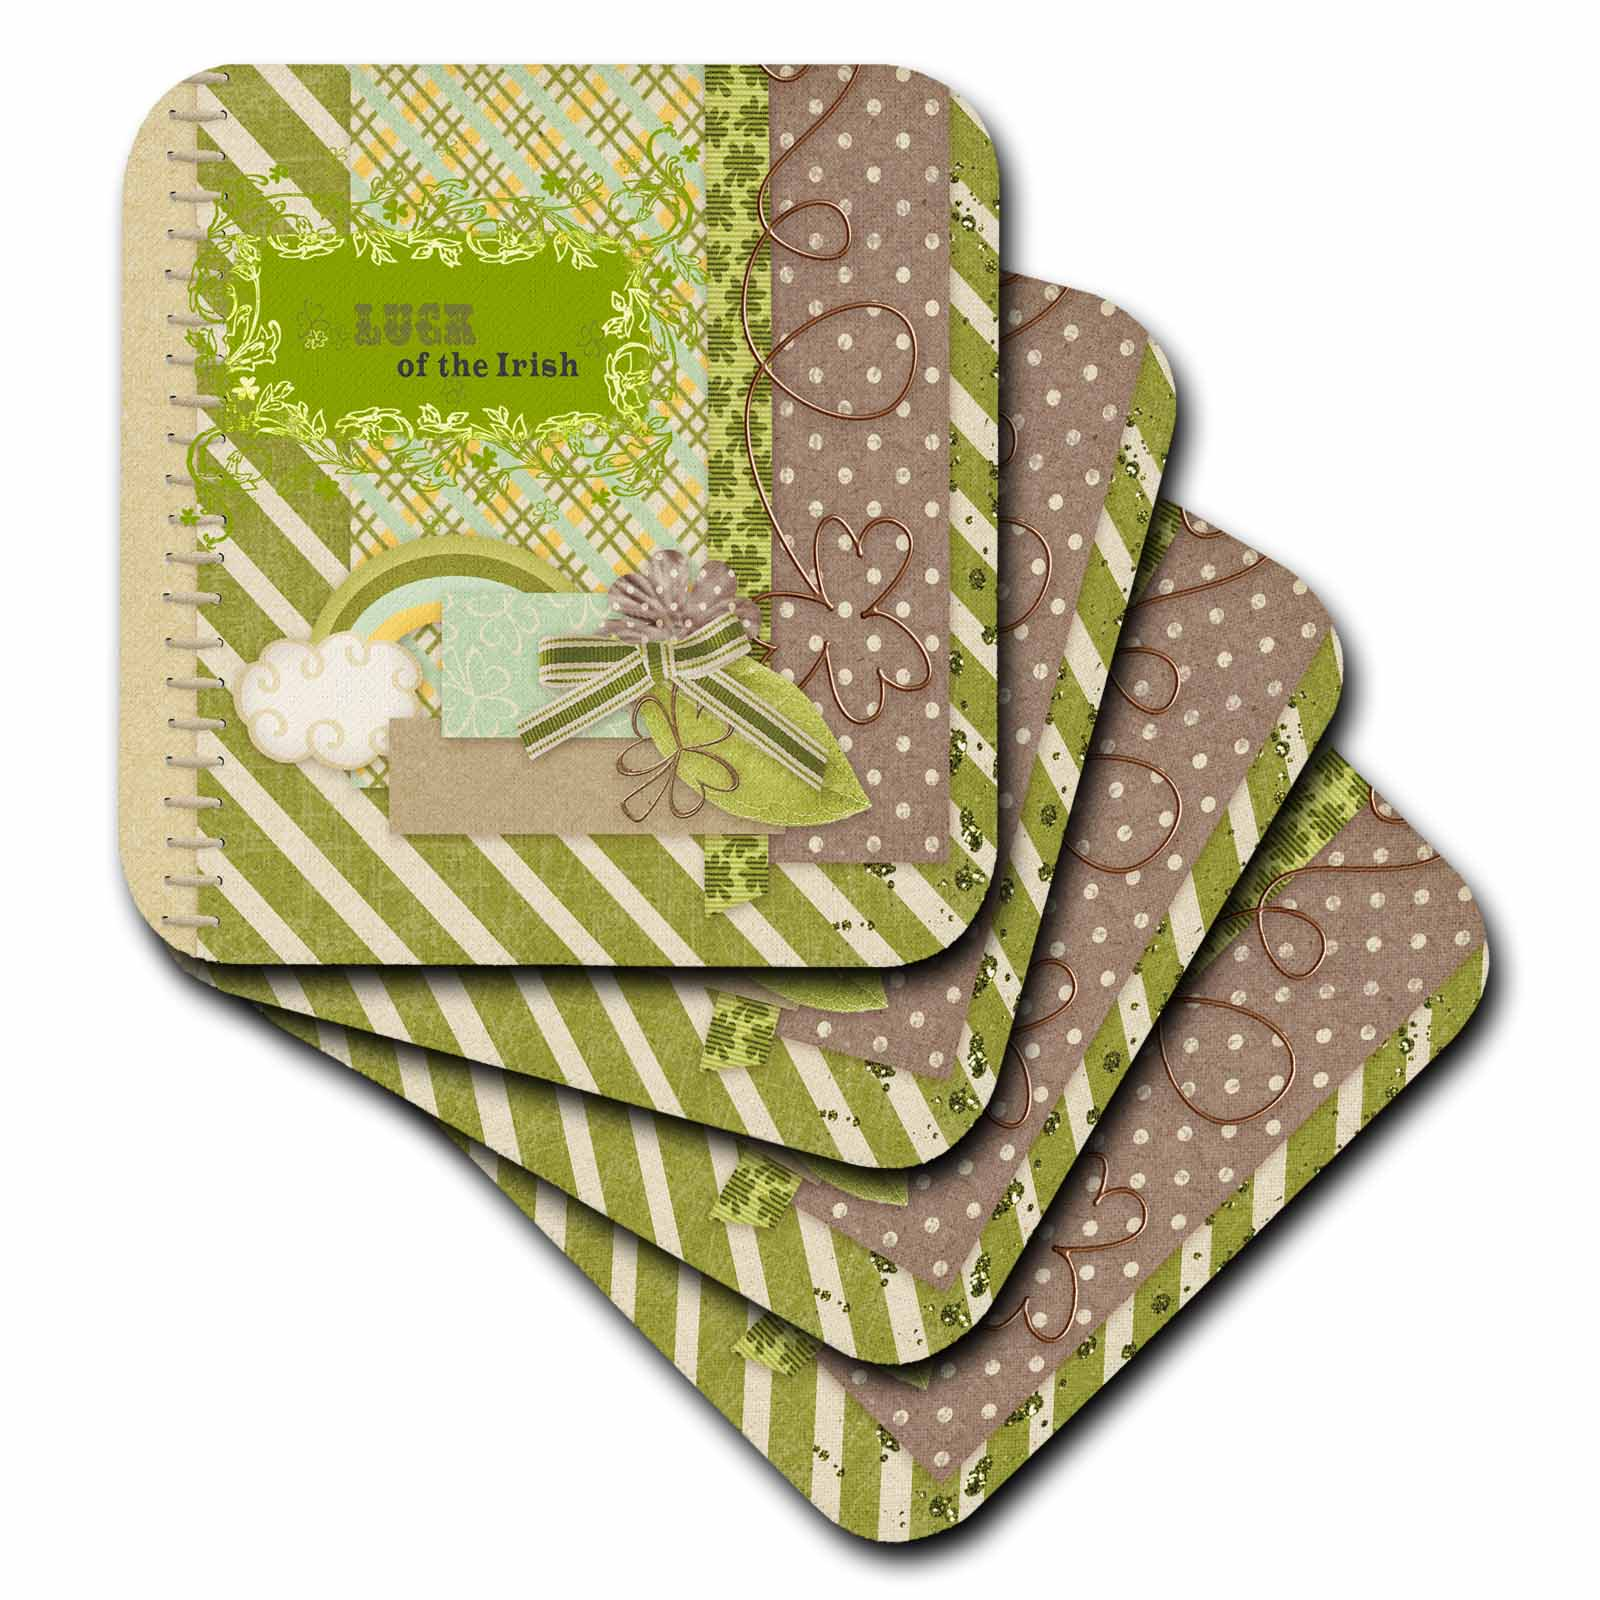 3dRose Luck of the Irish, Elegant Green Banner, Gold Wire Look Shamrocks, - Ceramic Tile Coasters, set of 4